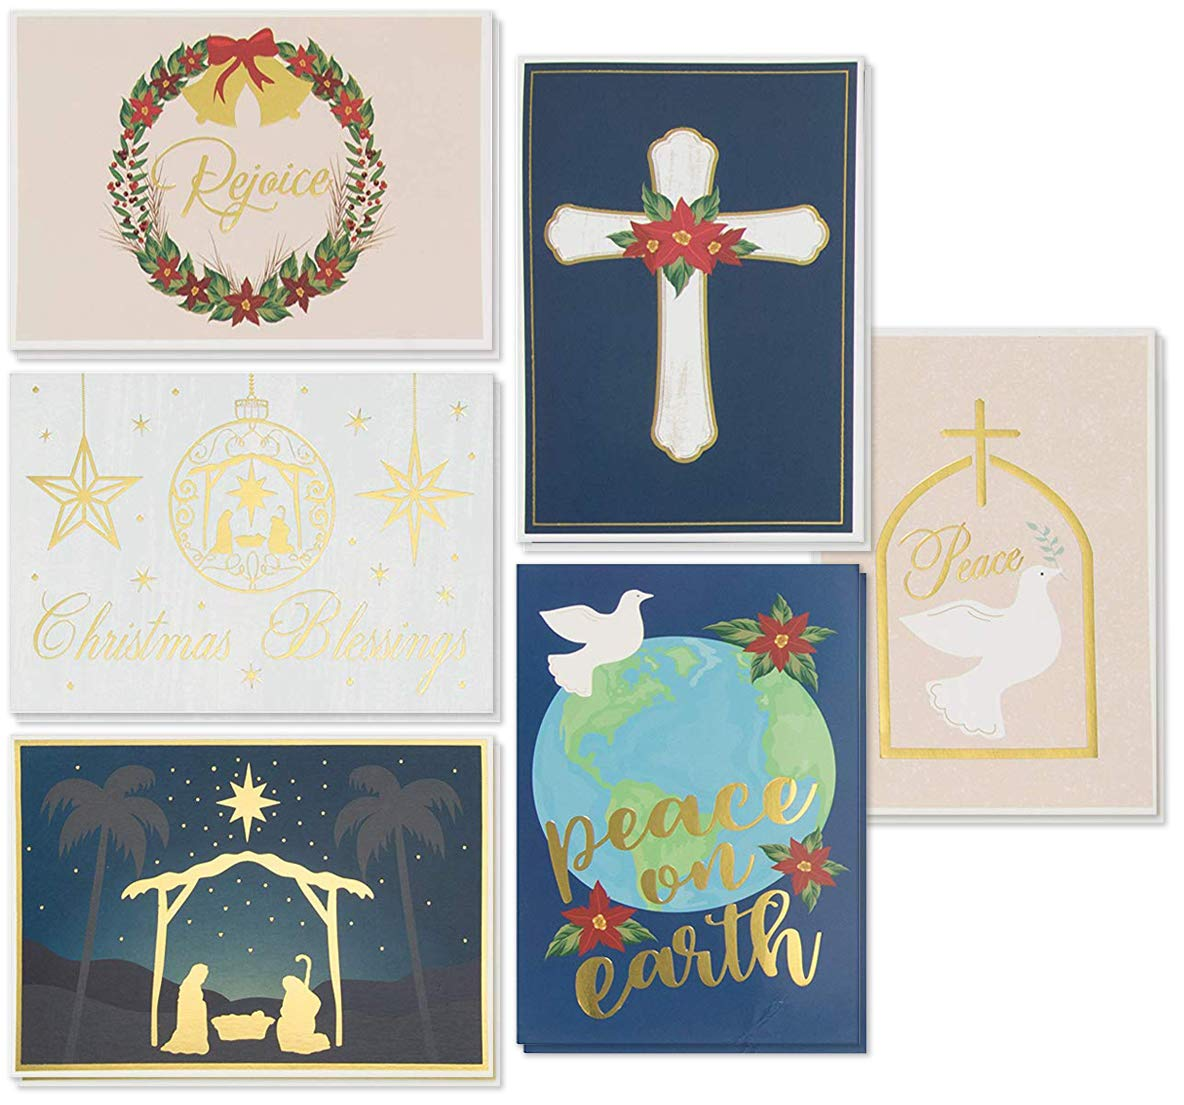 48-Pack Christian Christmas Cards - Holiday Greeting Cards Bulk Box Set, 6 Gold Foil Designs with Gold Paper Envelopes…